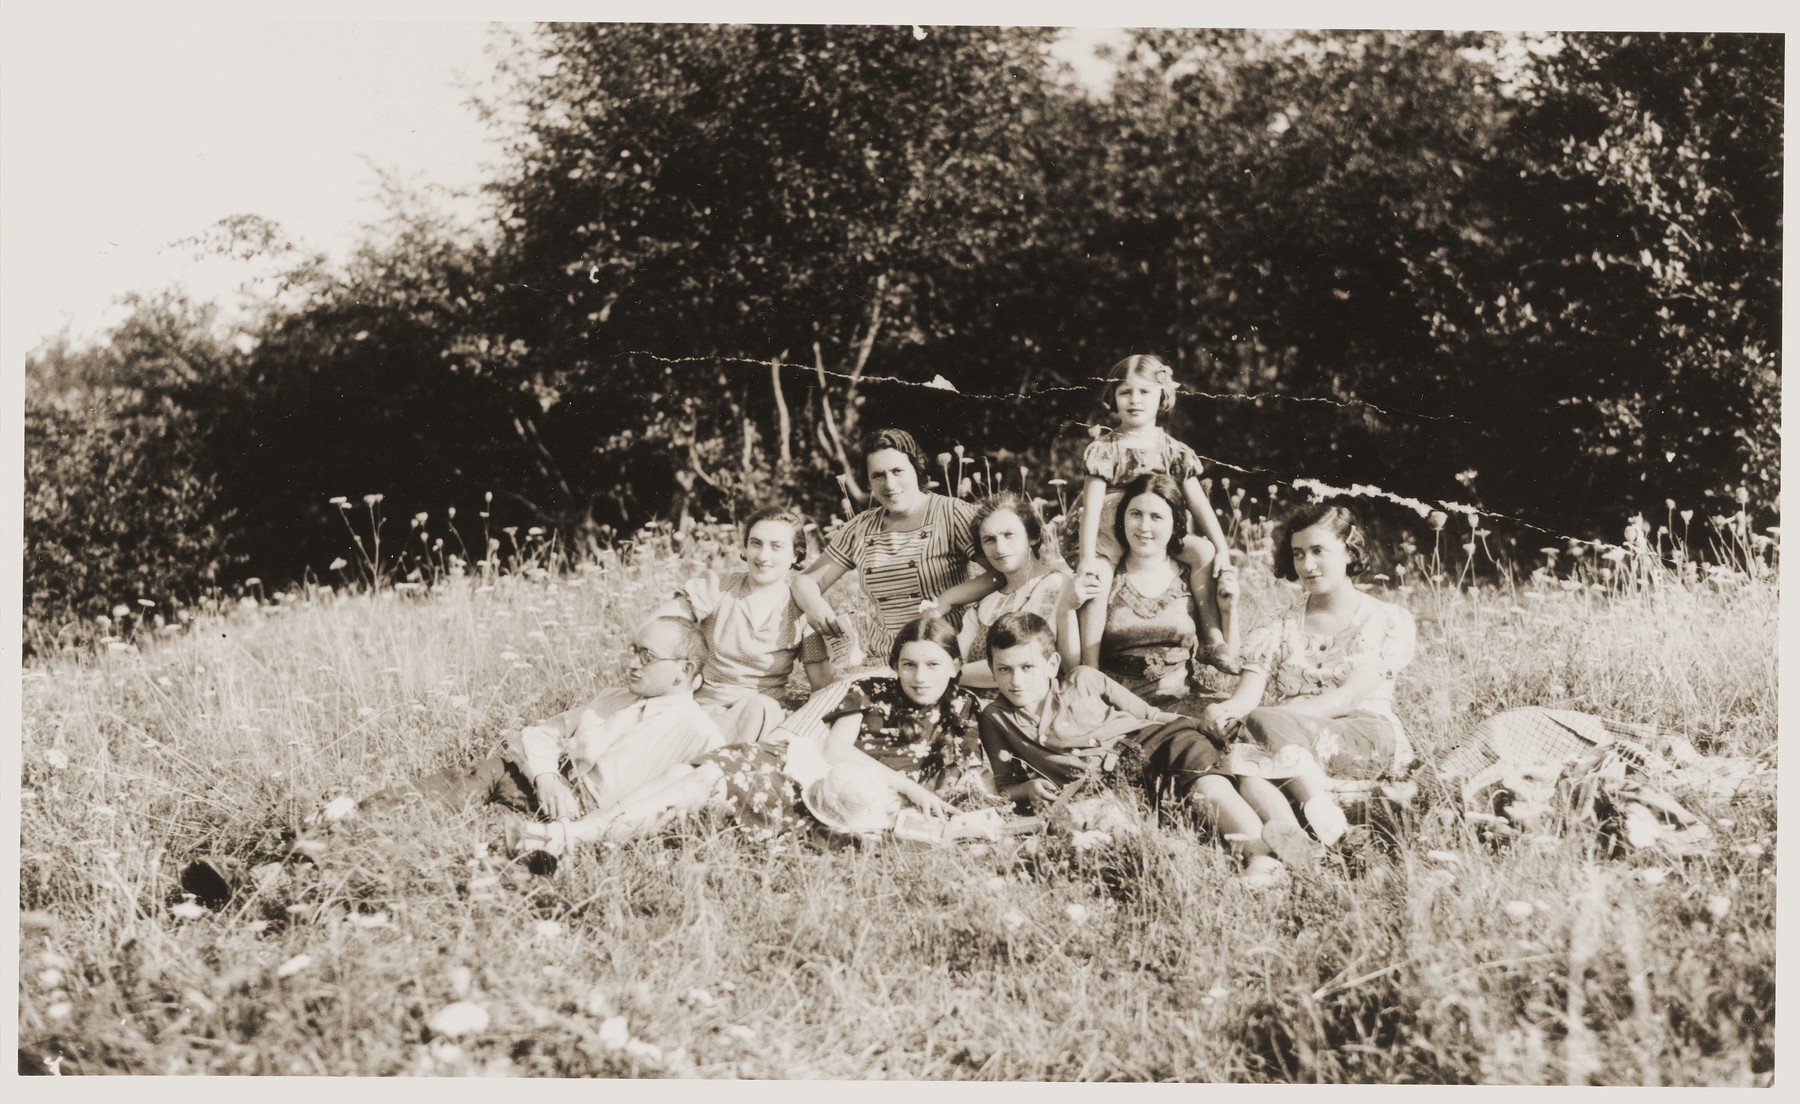 A group of friends picnics in the woods near Sadgura, Romania.  Included in the photo are Fritzi Brender, Perle Katz, Anna Rosenheck Brender, Bella Helenberg Nathan, Esther Hellenberg, Koka Reichman and David Katz.